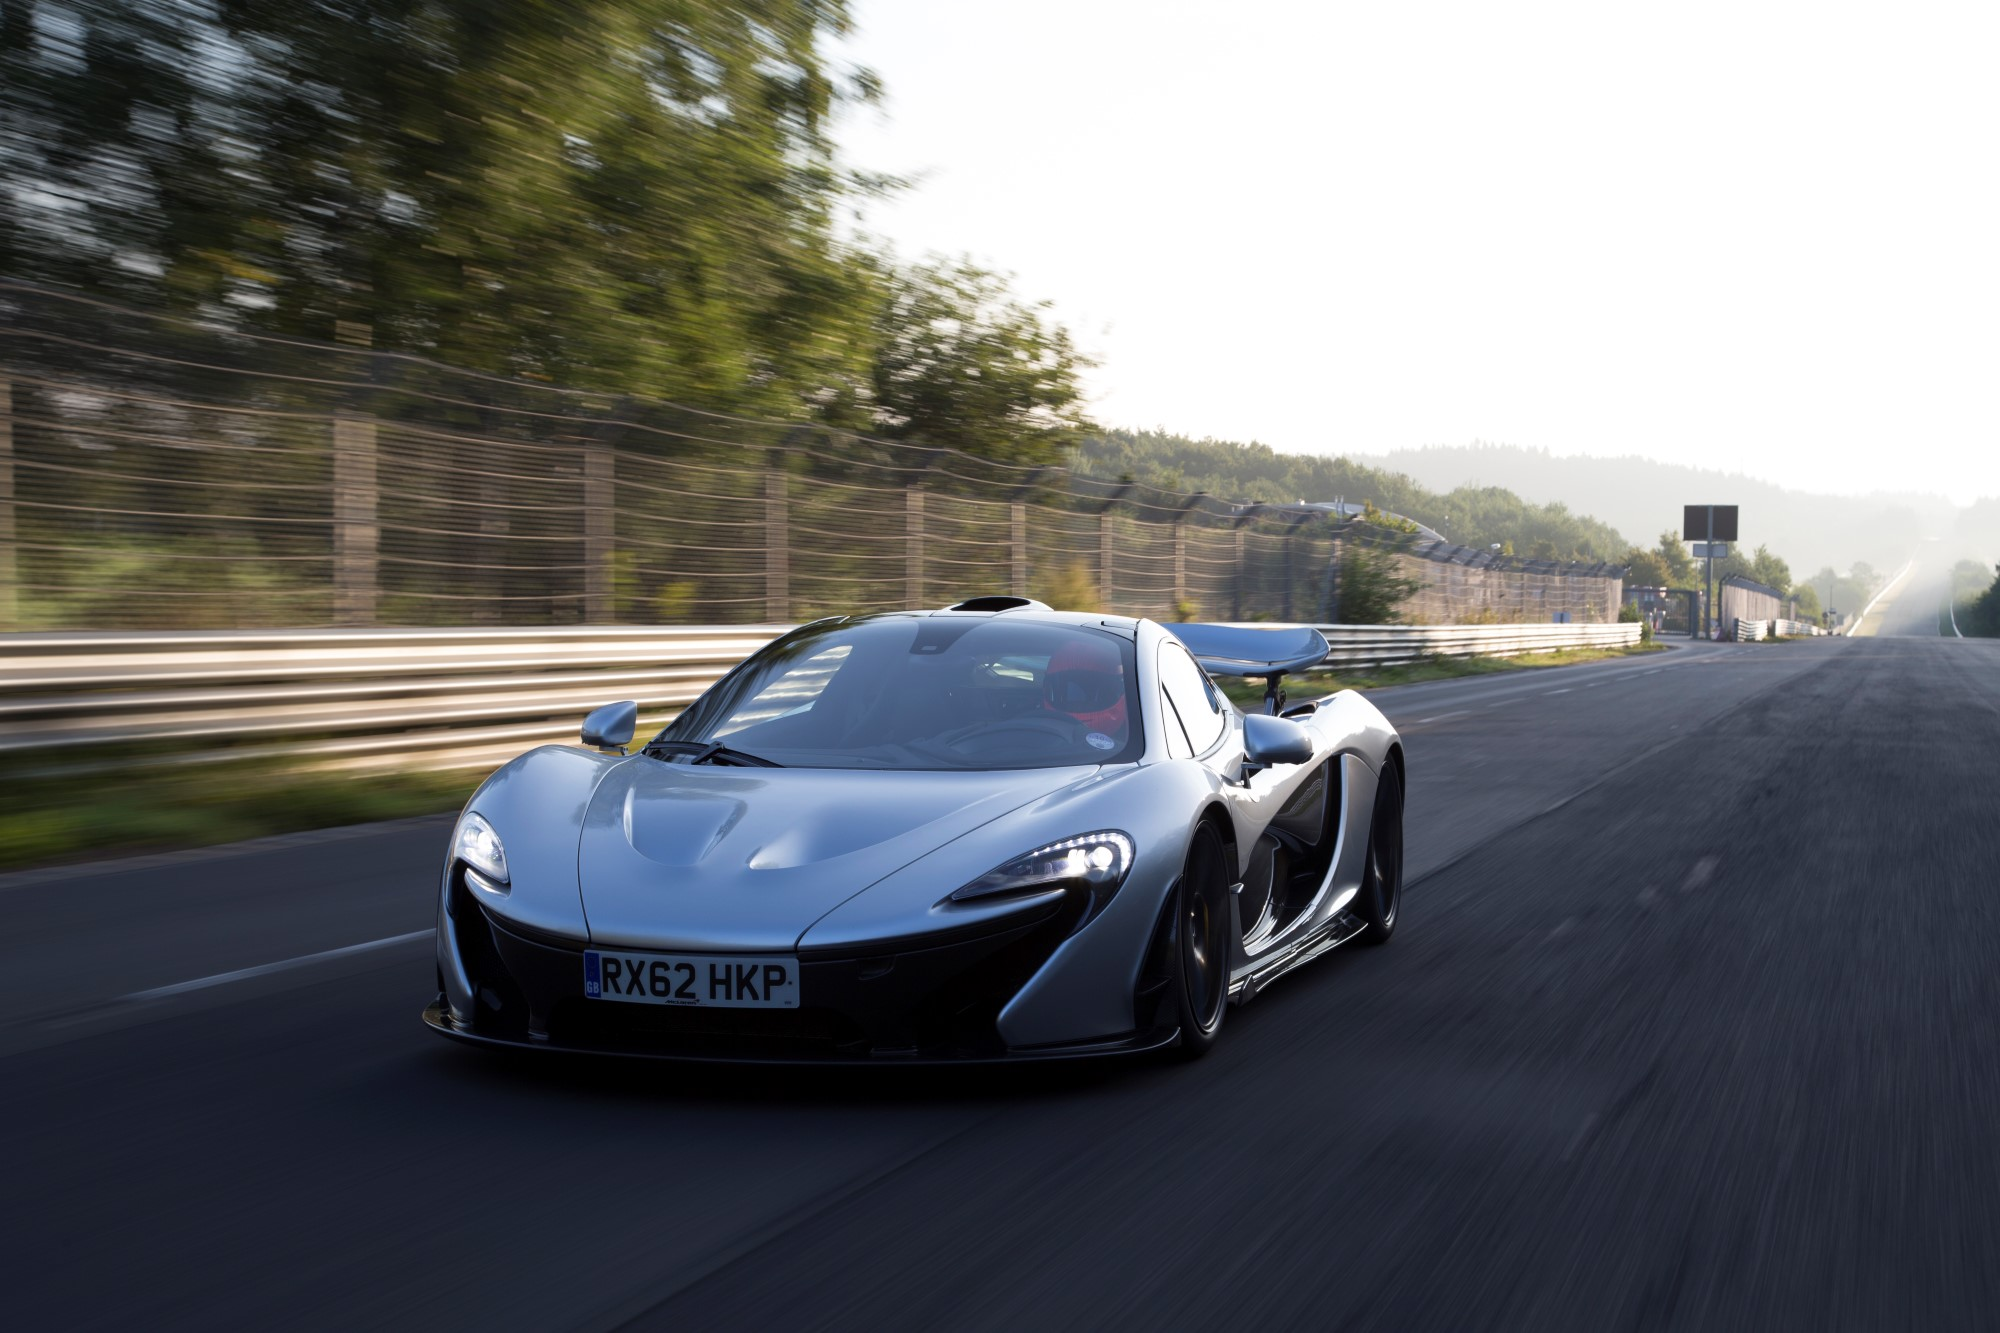 McLaren P1 May Have Lapped 'Ring In 6 minutes And 30+ Seconds